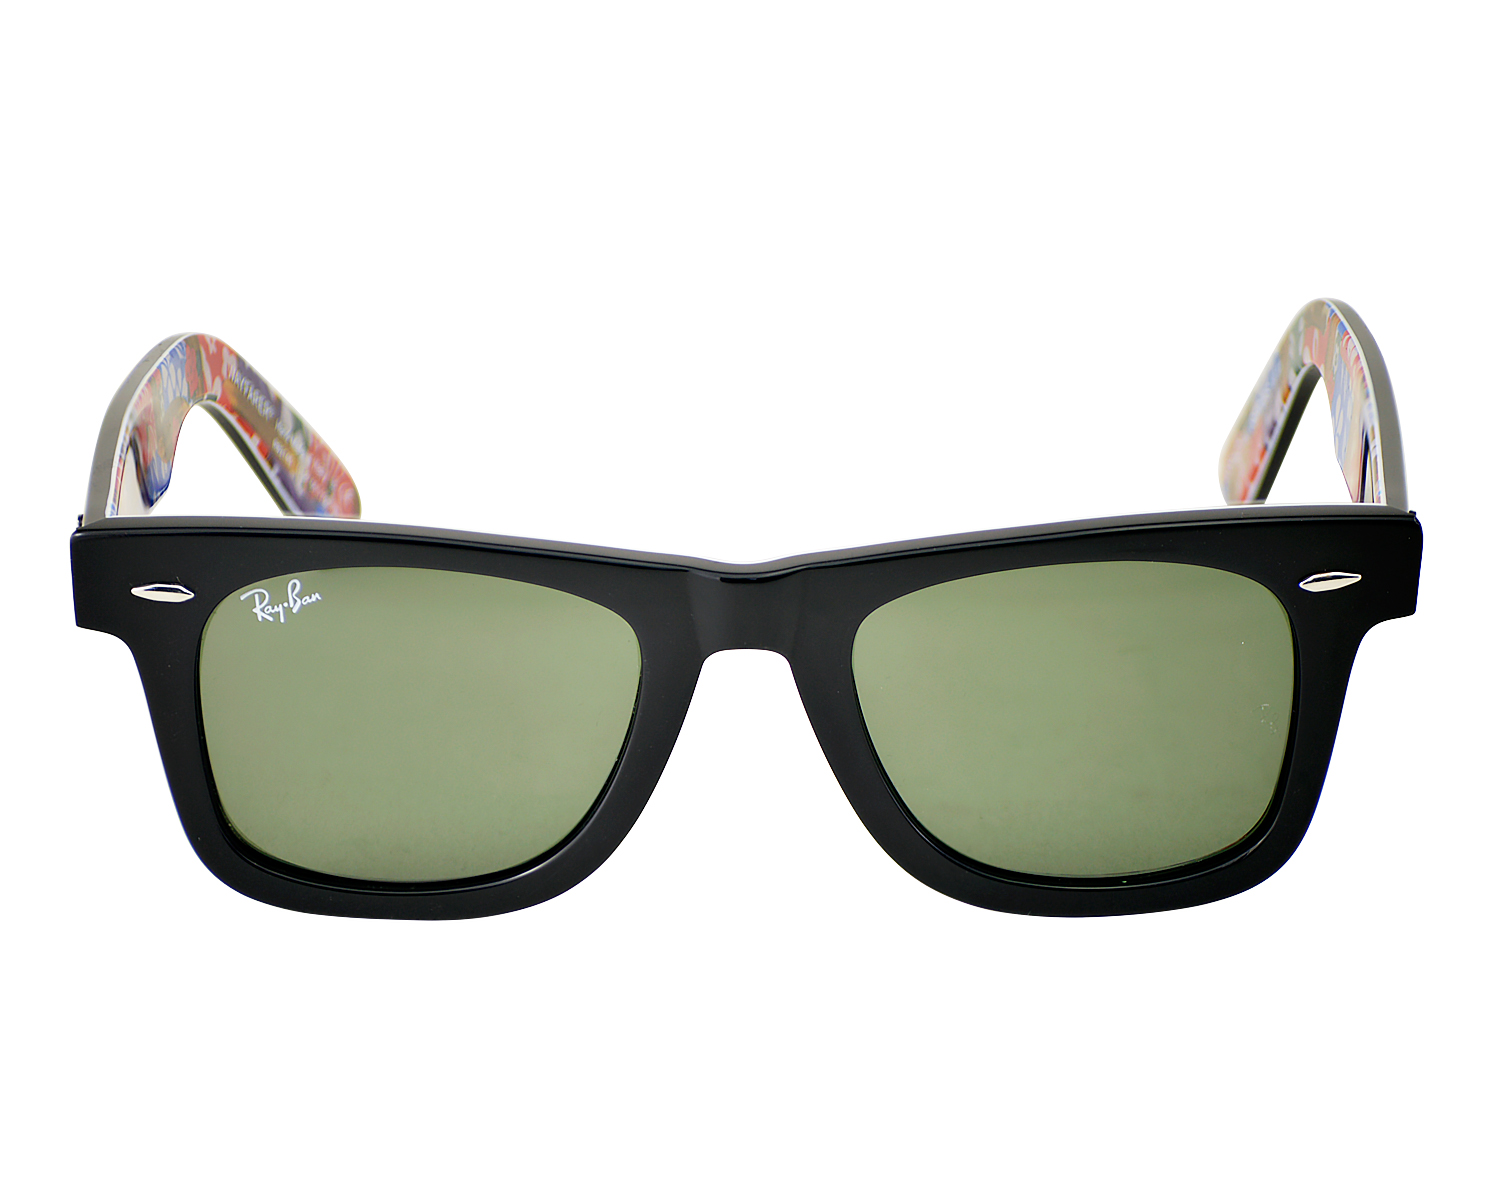 8adcd0d433 Ray Ban RB 2140 Original Wayfarer Rare Print 1136 Black multi Frame  Green  Classic G-15 Glass Lens Unisex Sunglasses 50mm